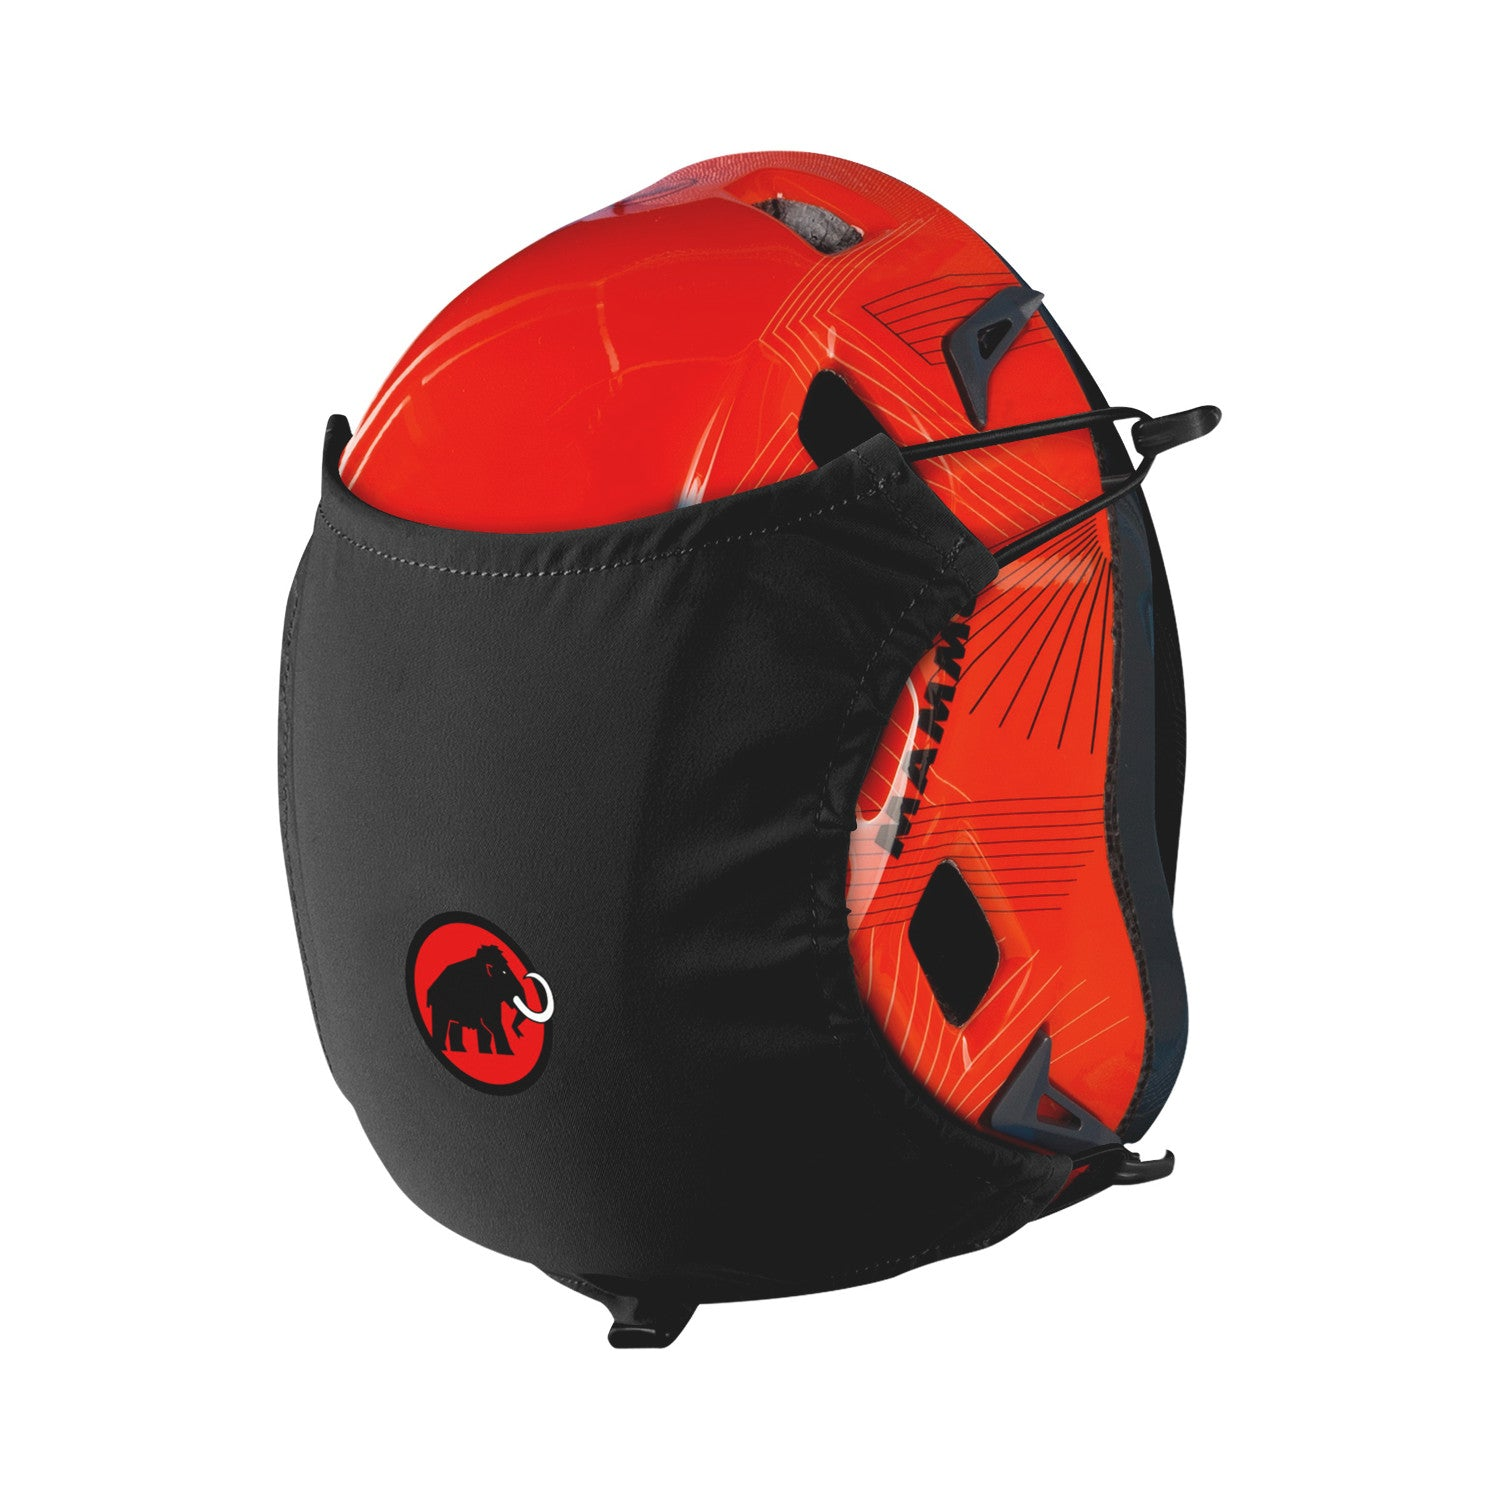 Mammut Helmet Holder, shown in black colour in use on a red climbing helmet